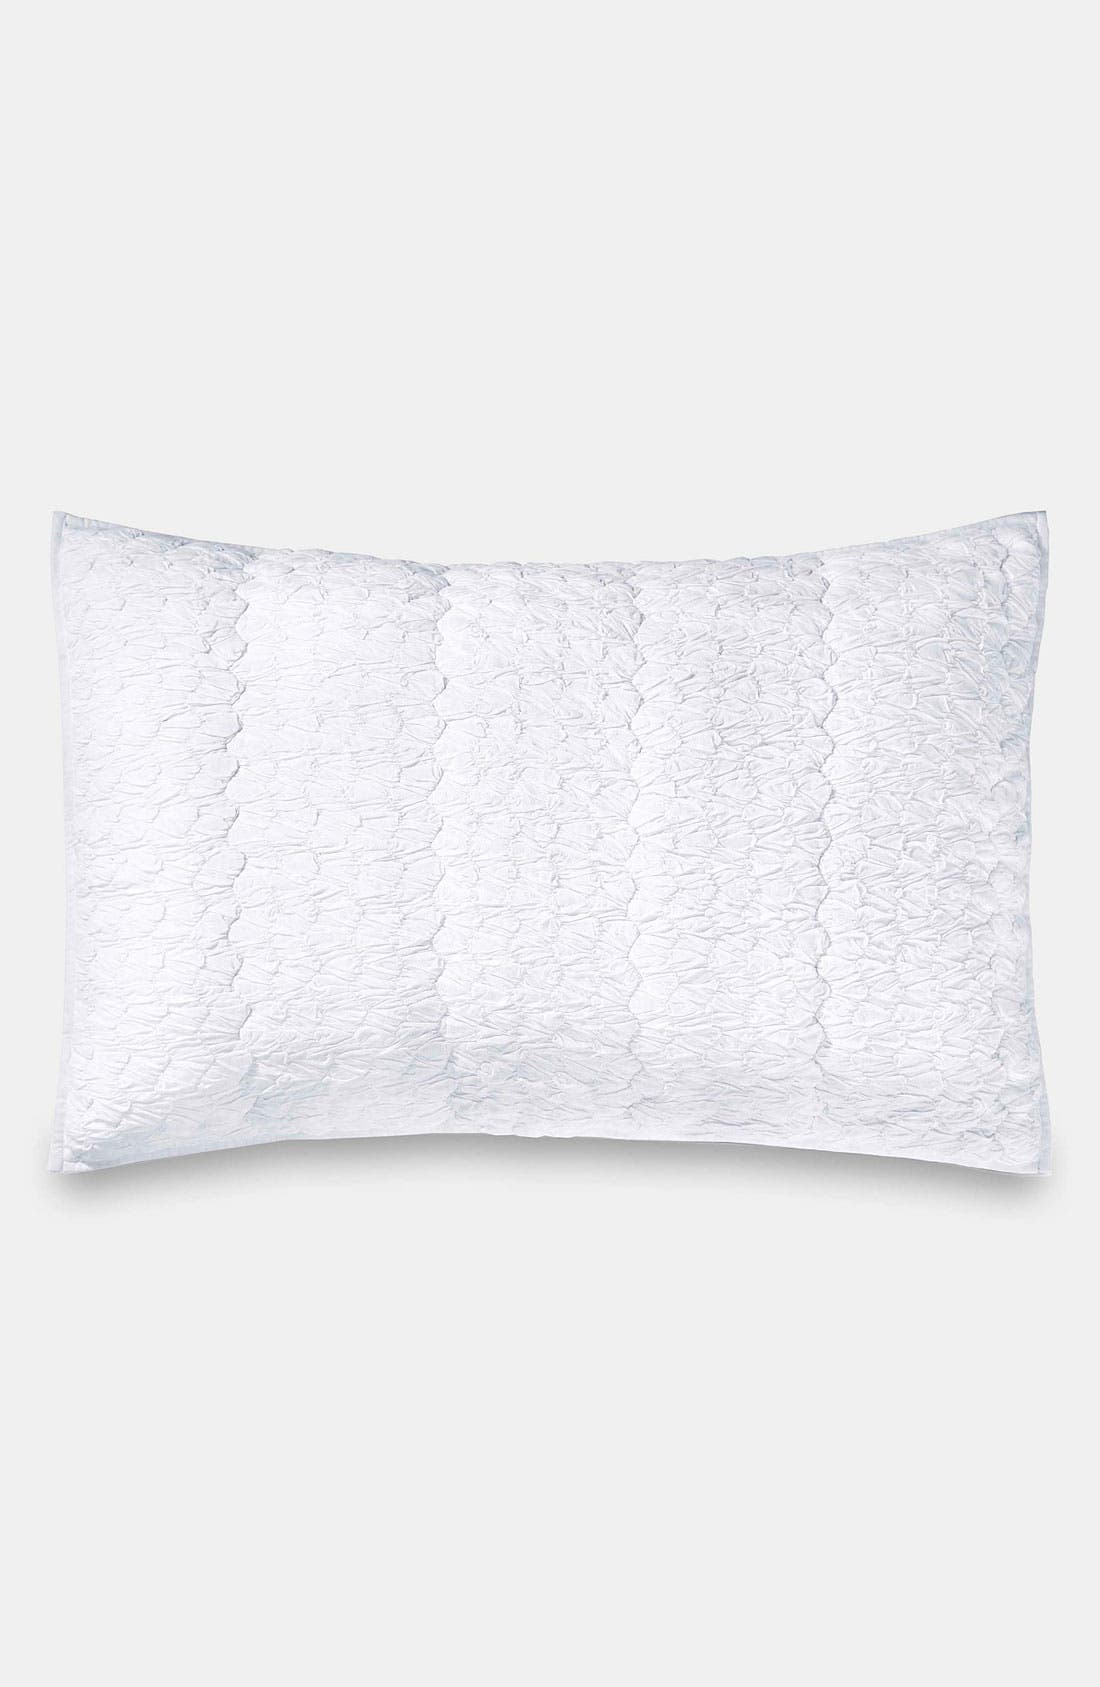 'Pure Enchantment' Pillow Sham,                             Main thumbnail 1, color,                             100